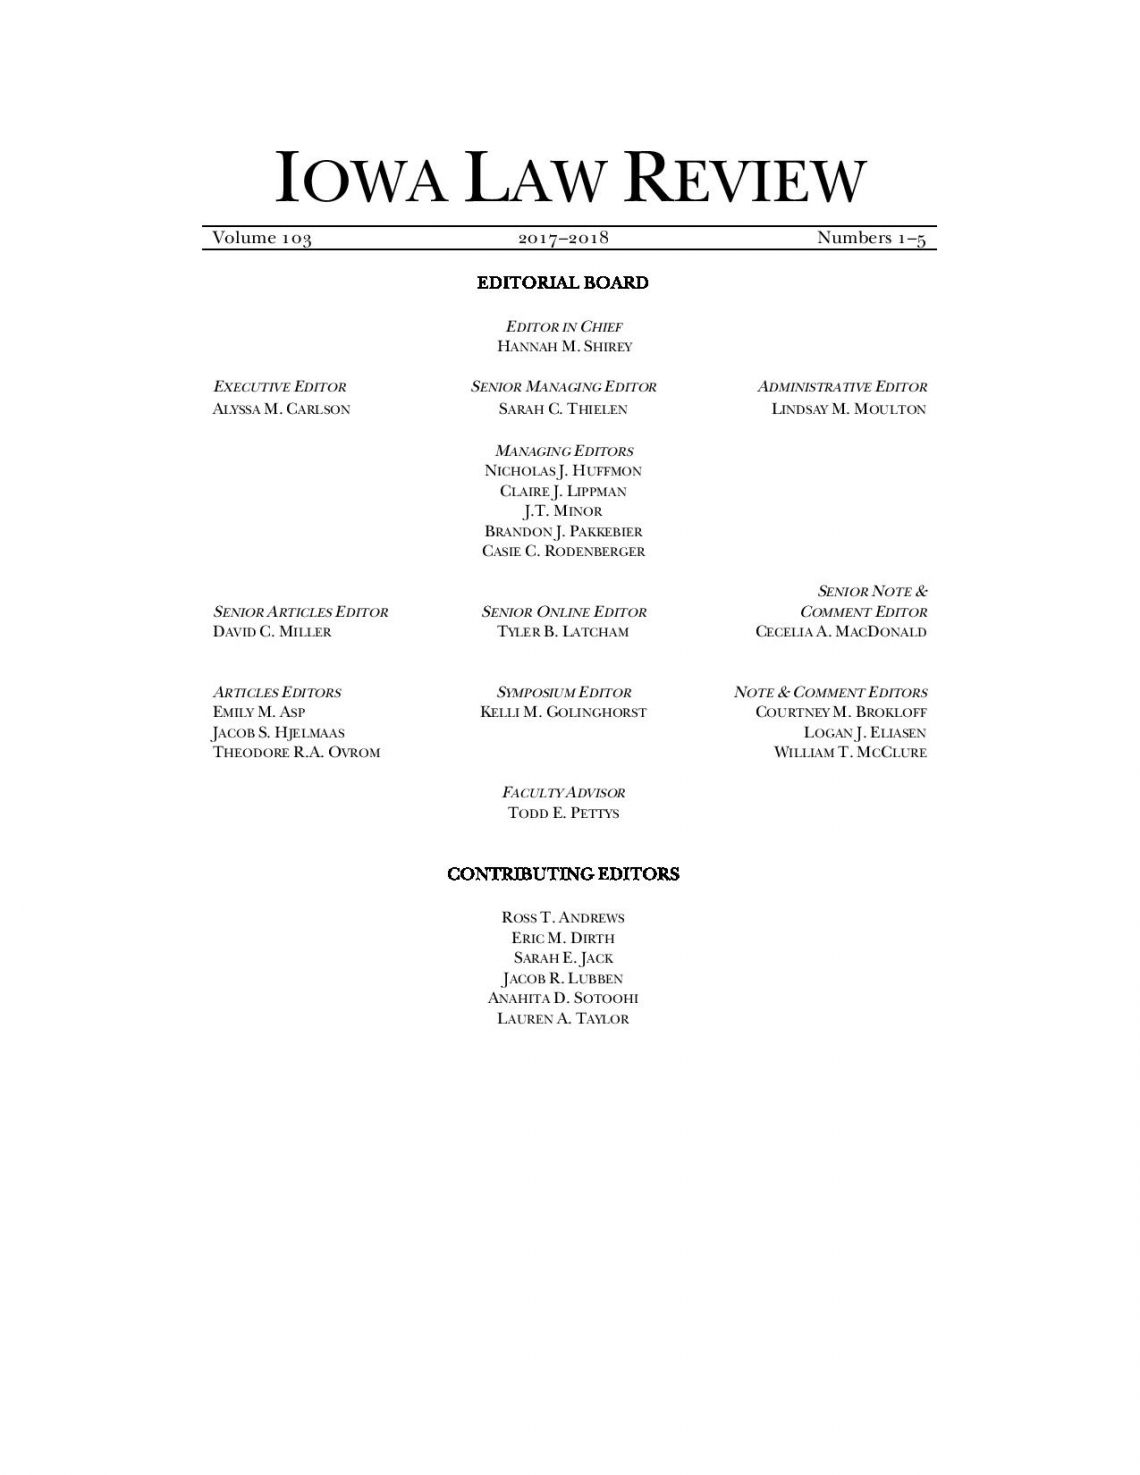 Latest Editorial Board, use this link for a PDF version